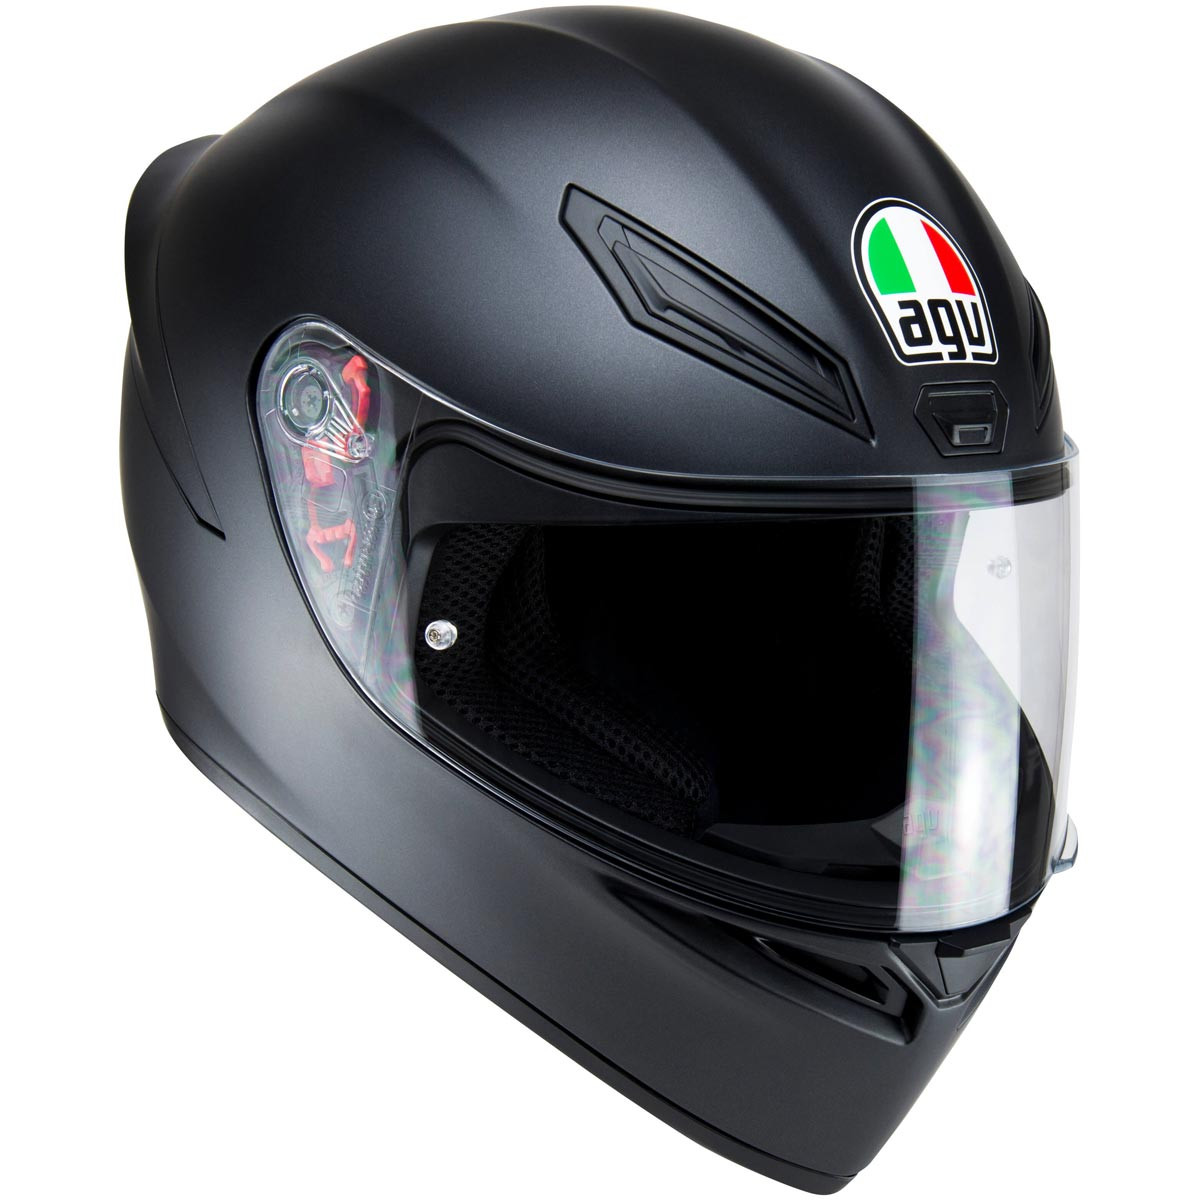 The AGV K3 Helmet